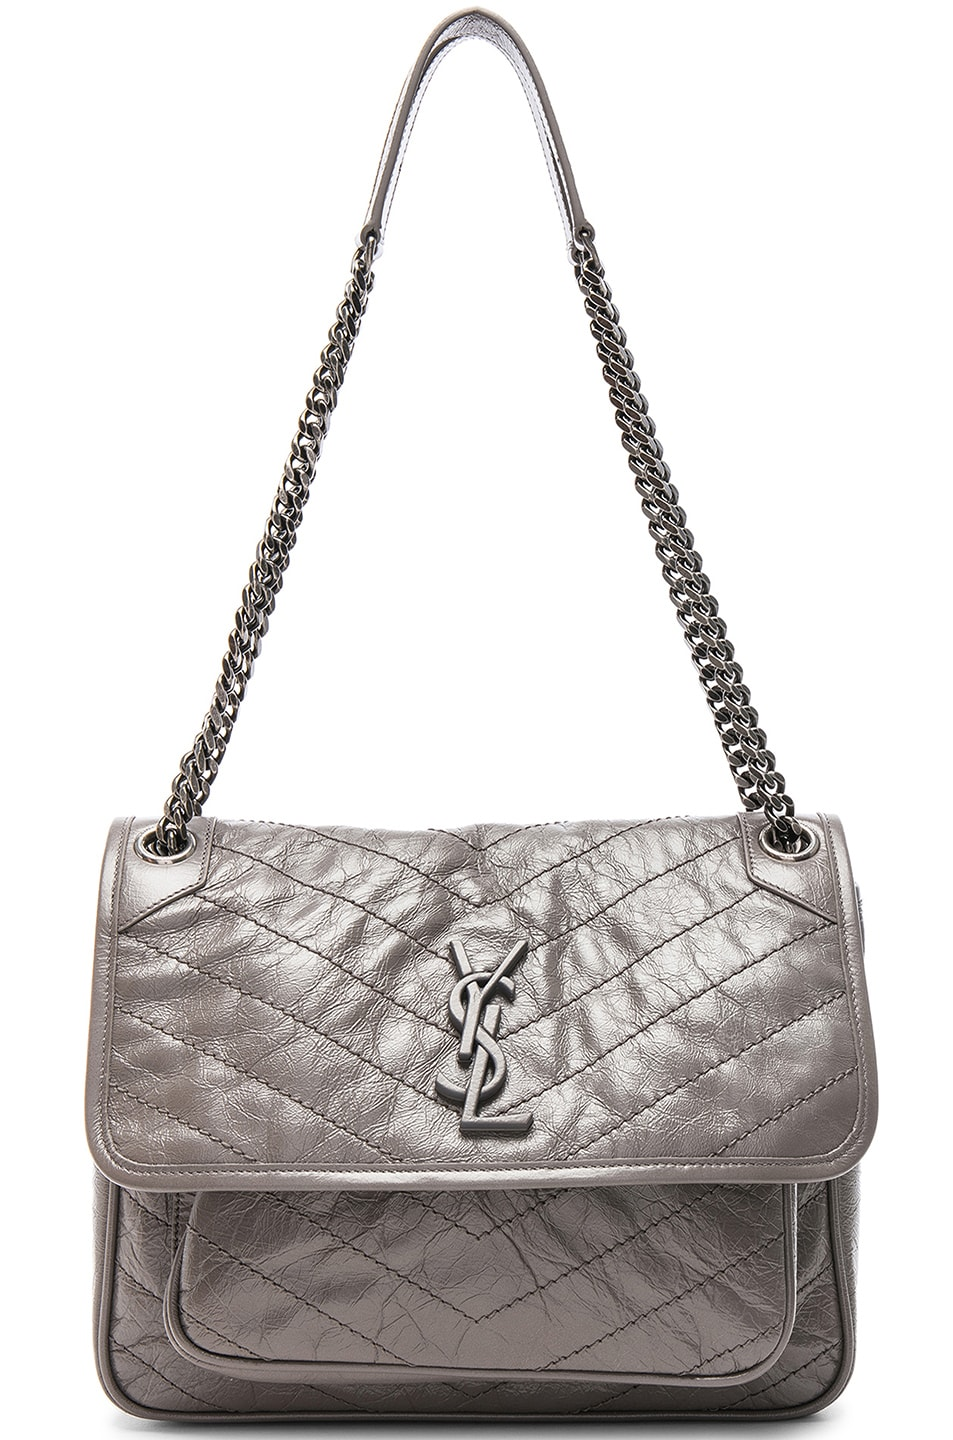 89c0c55fd3 Saint Laurent Medium Niki Monogramme Chain Bag In Gray